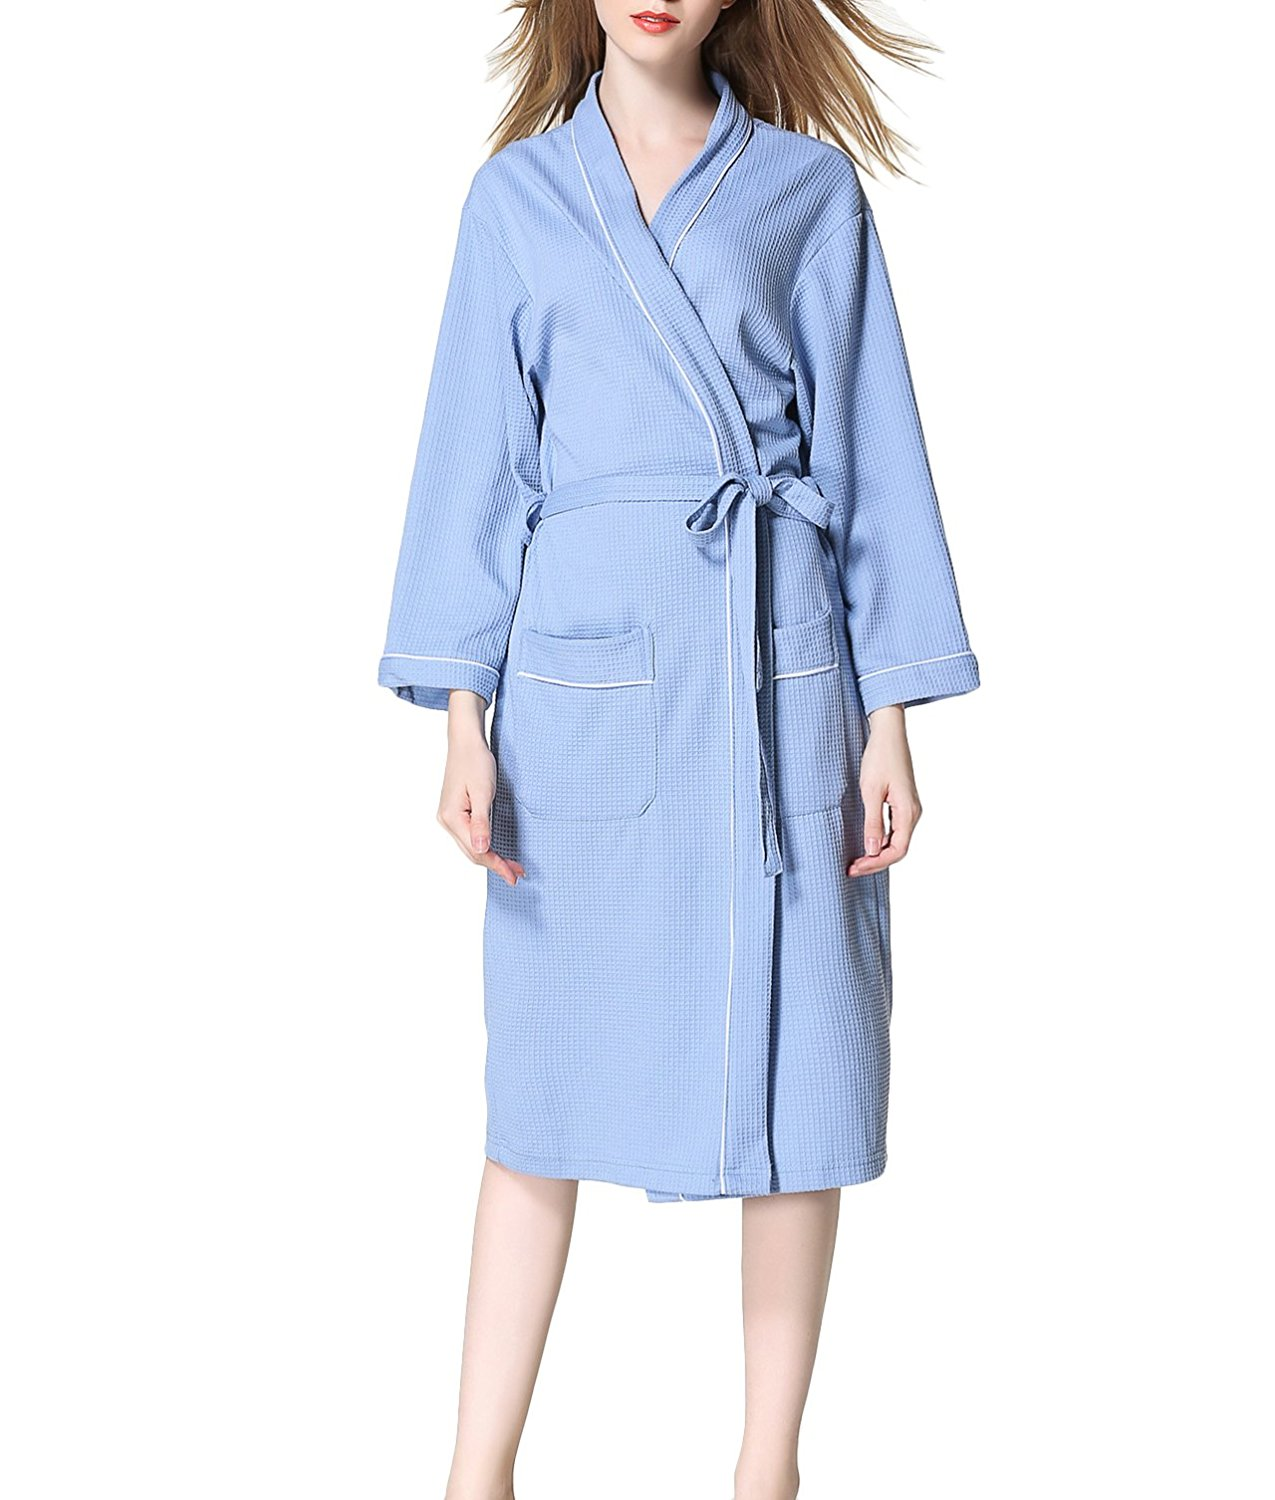 de289a459d Get Quotations · Haloyo Women Men Hotel Spa Waffle Kimono Soft Warm Long  Hooded Robes Sleepwear Bathrobe